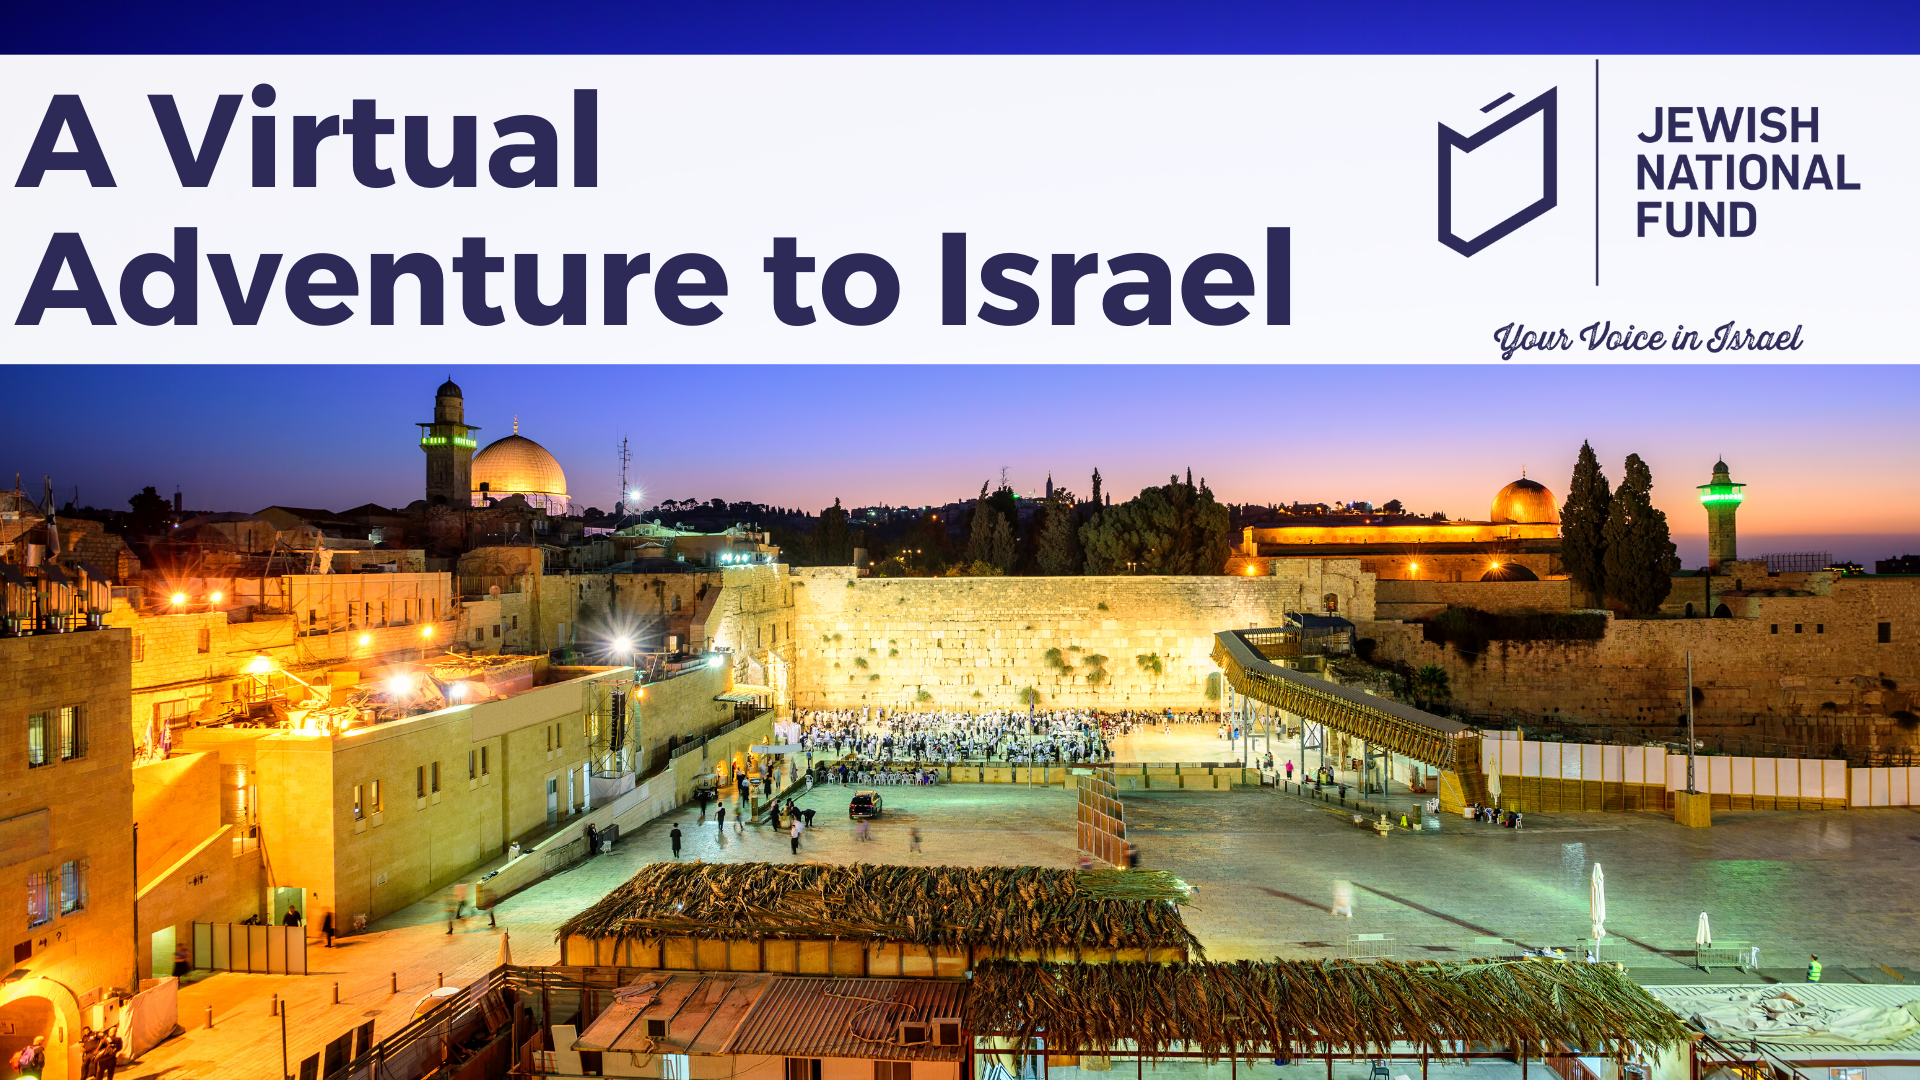 Banner Image for A Virtual Travel Adventure to Israel with Rabbi Kornberg & JNF